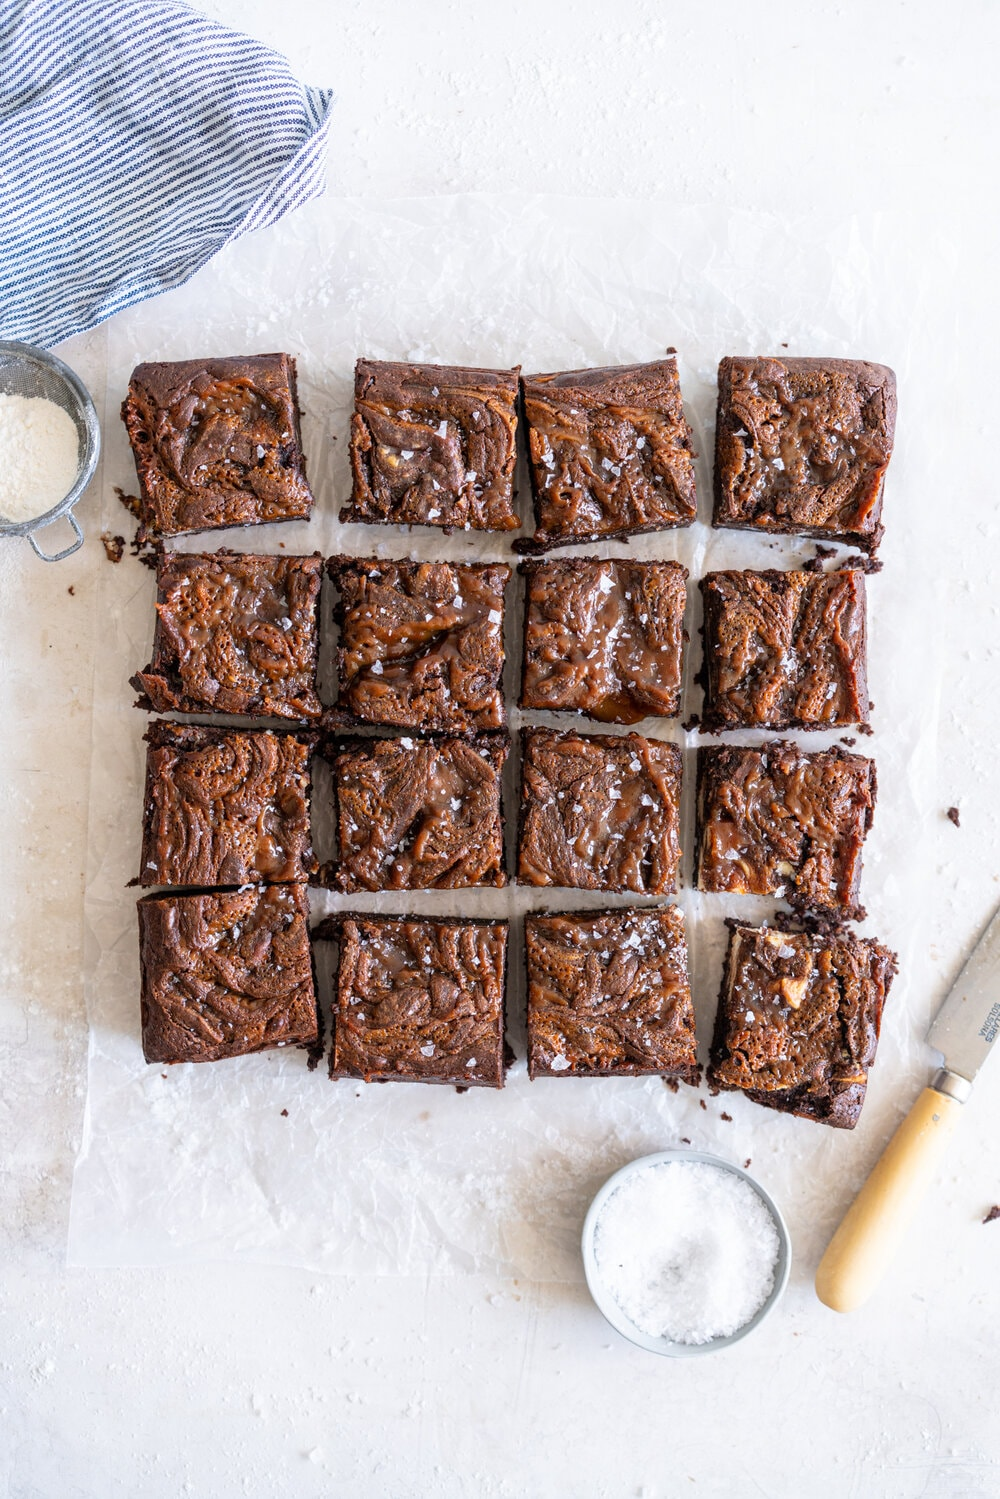 Peanut Butter Caramel Cream Cheese Swirl Brownies - fudgy brownies are swirled with a cheesecake cream cheese layer and then topped with a peanut butter caramel before being baked until fudgy and perfect. These are a must for any cheesecake or peanut butter lovers. #peanutbutterbrownies #creamcheesebrownies #cheesecakebrownies